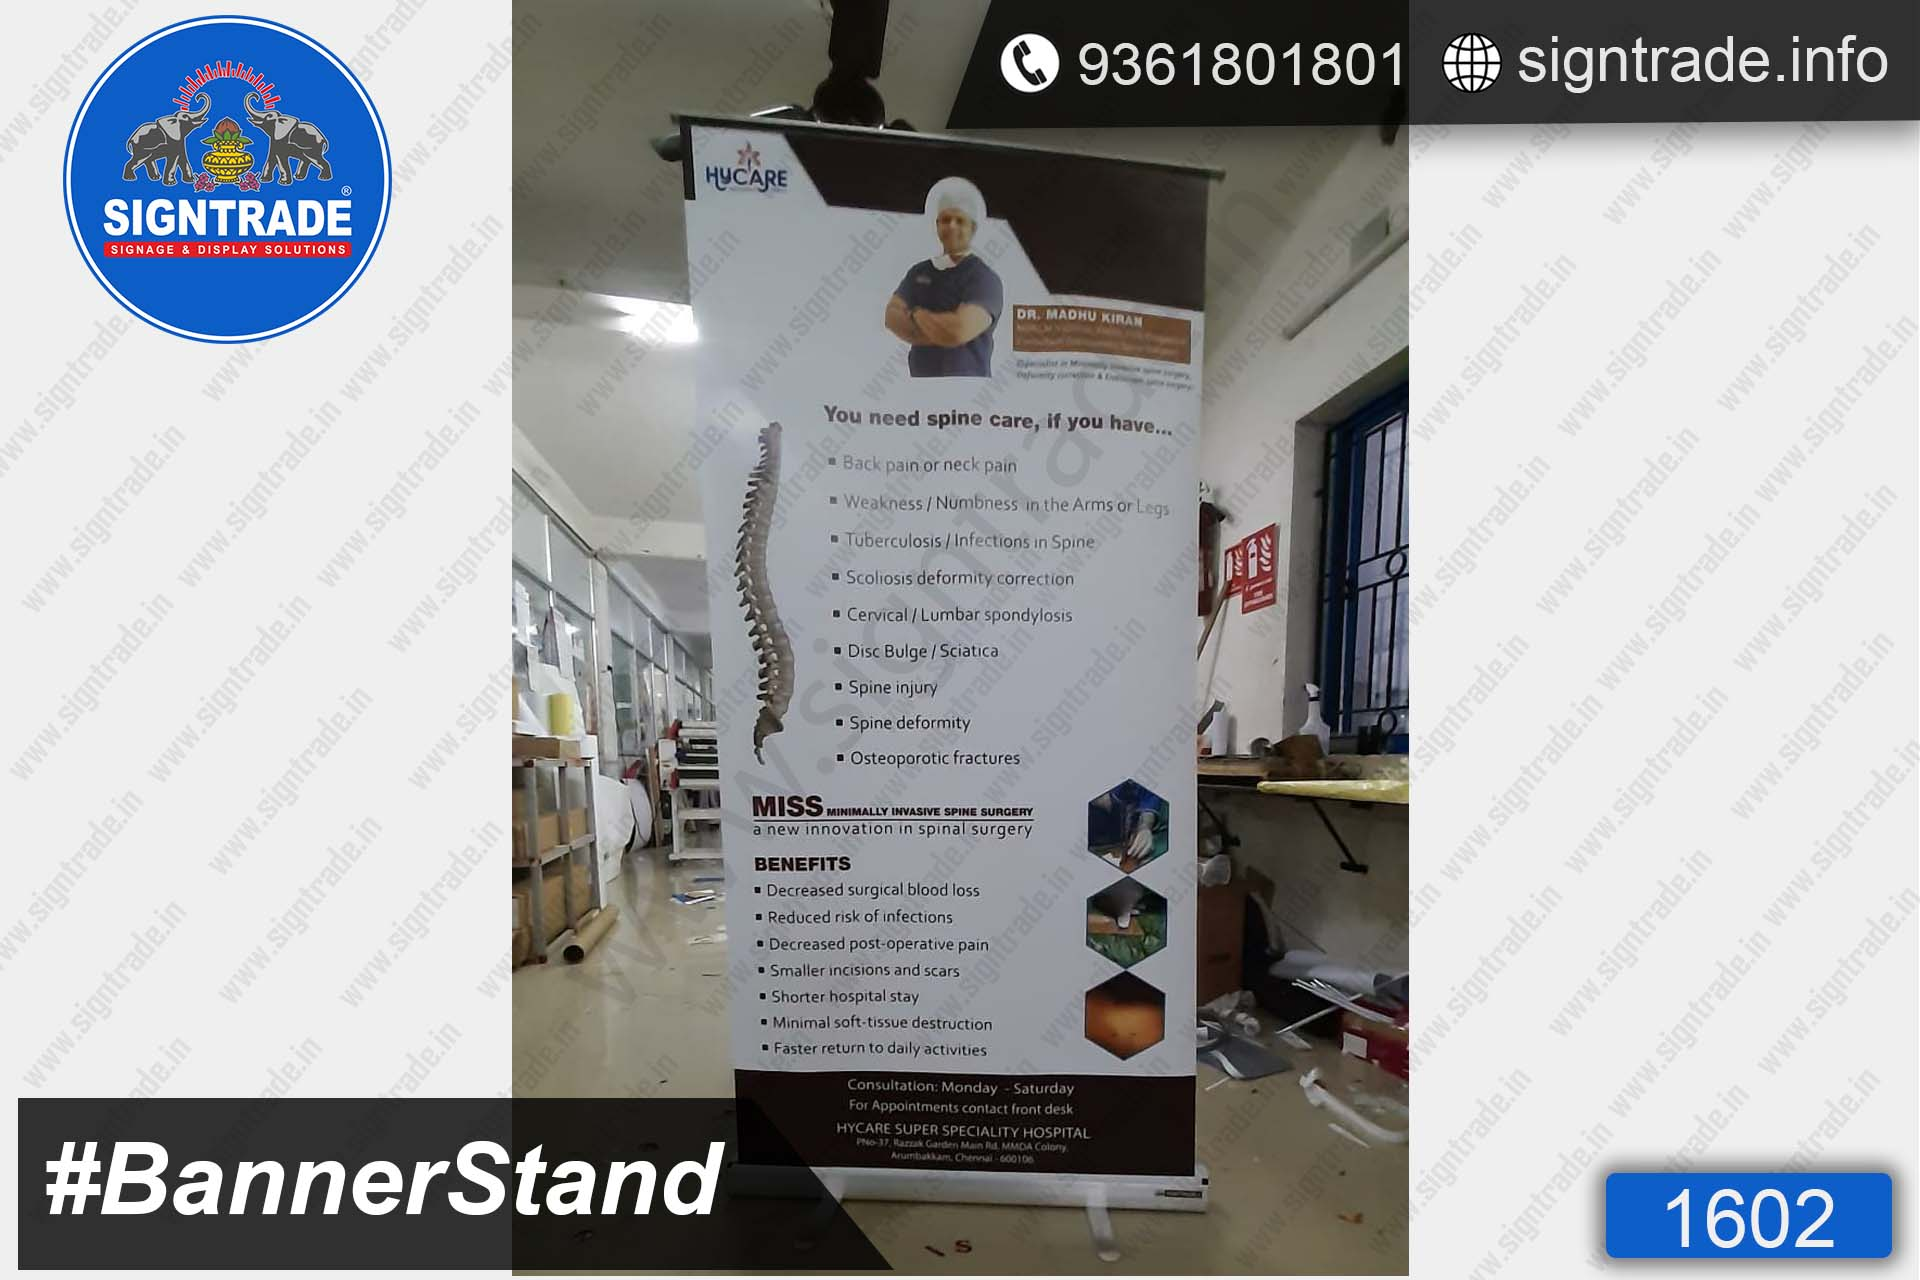 Hycare Super Speciality Hospital - Standee - SIGNTRADE - Roll Up Banner Stand Manufacturers in Chennai